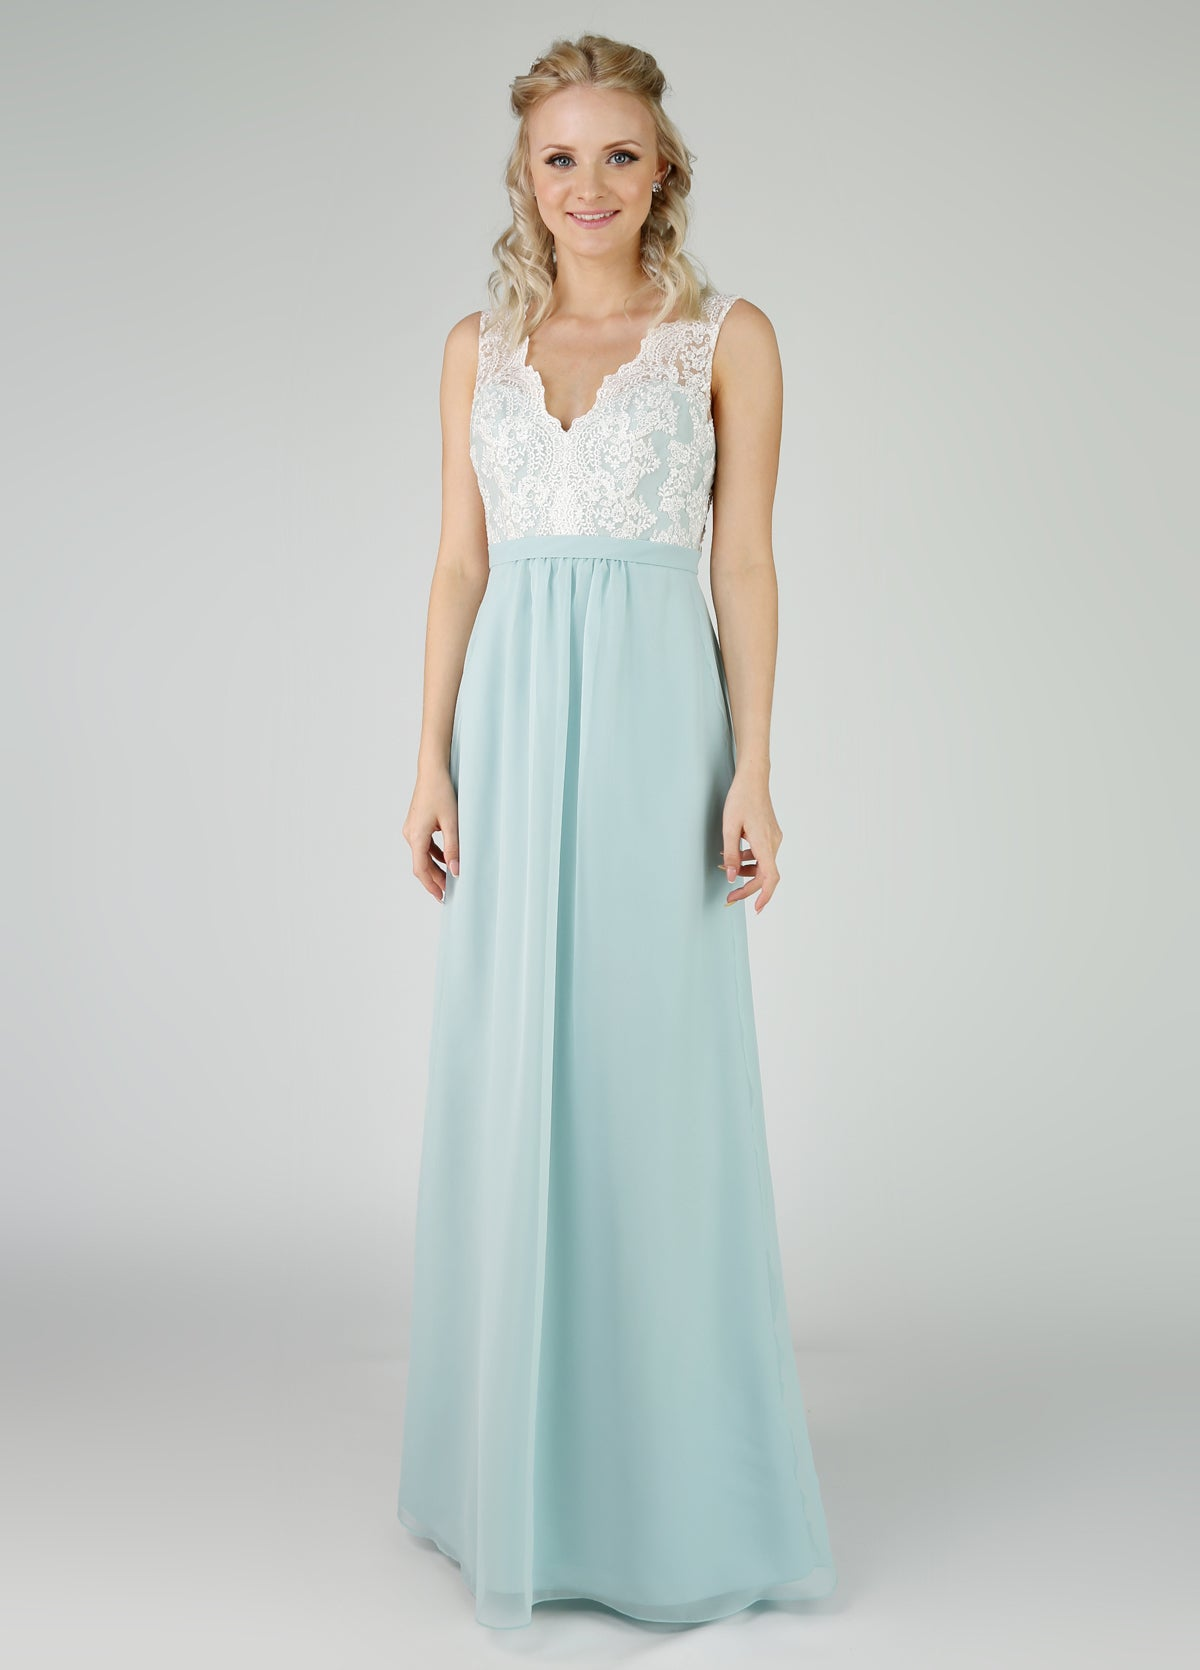 Bridesmaids dress with a lace bodice and chiffon skirt